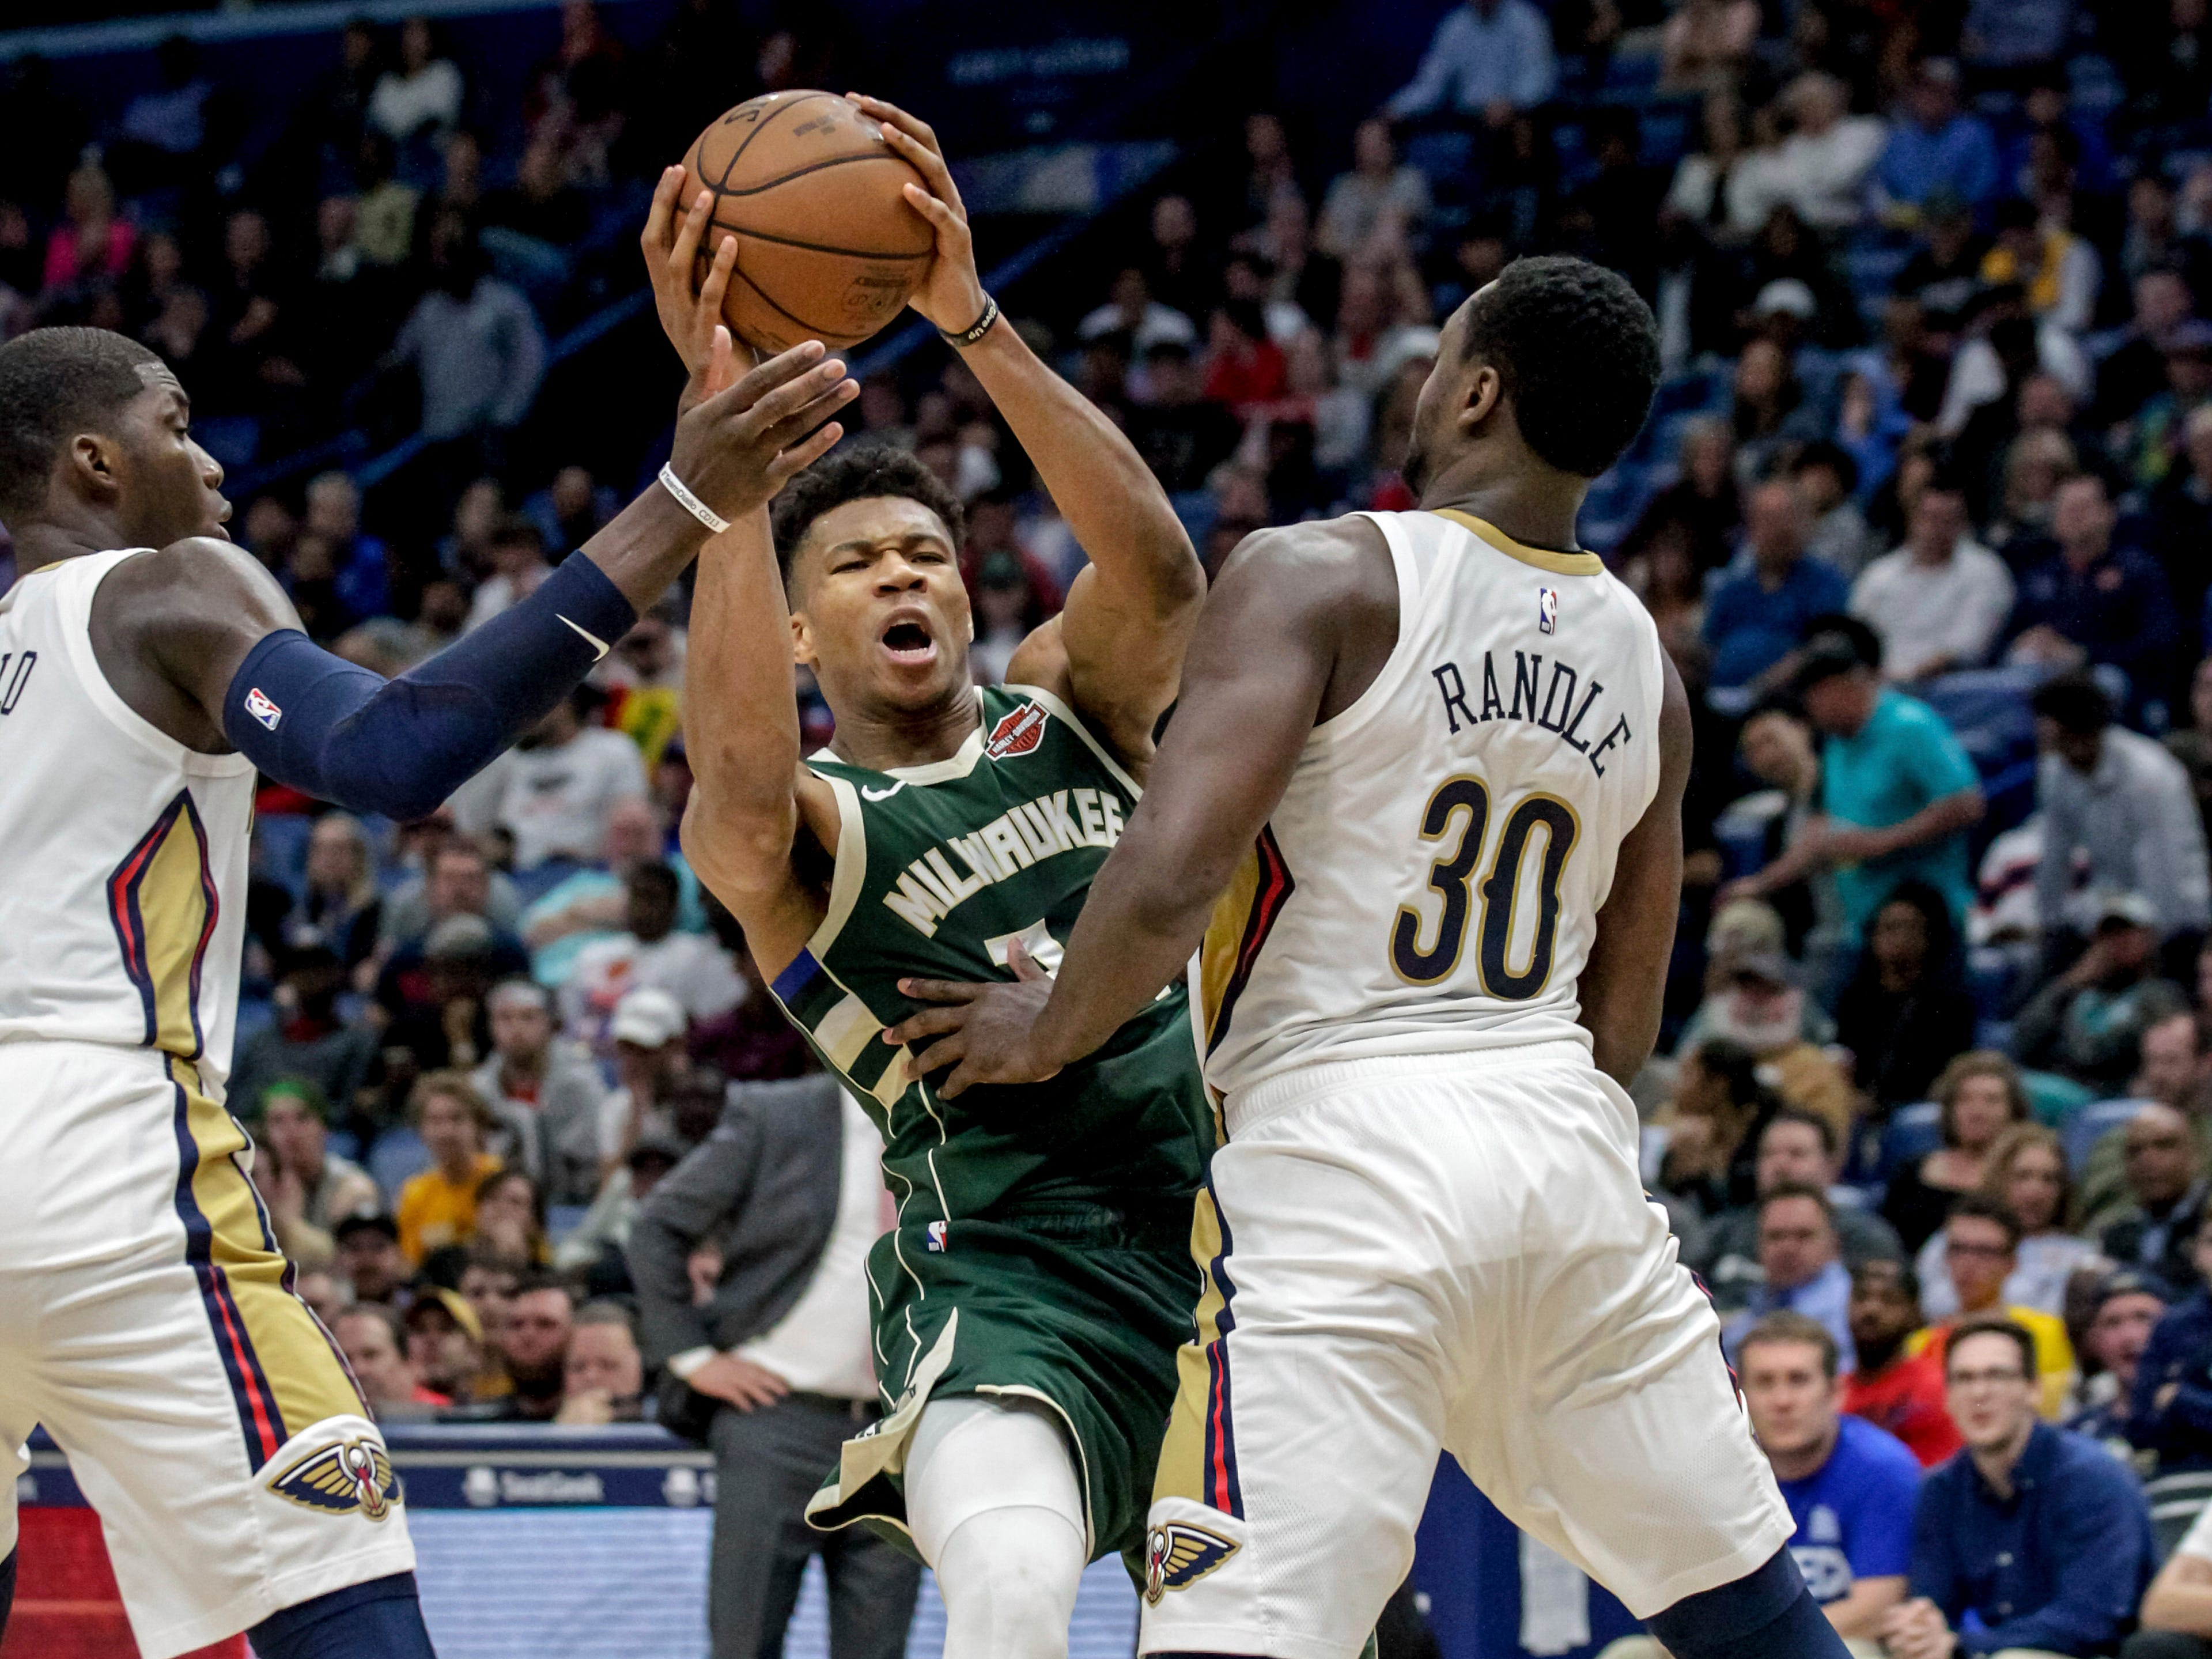 Bucks forward Giannis Antetokounmpo attempts to get between Julius Randle (30) and Cheick Diallo of the Pelicans during a drive in the second half.